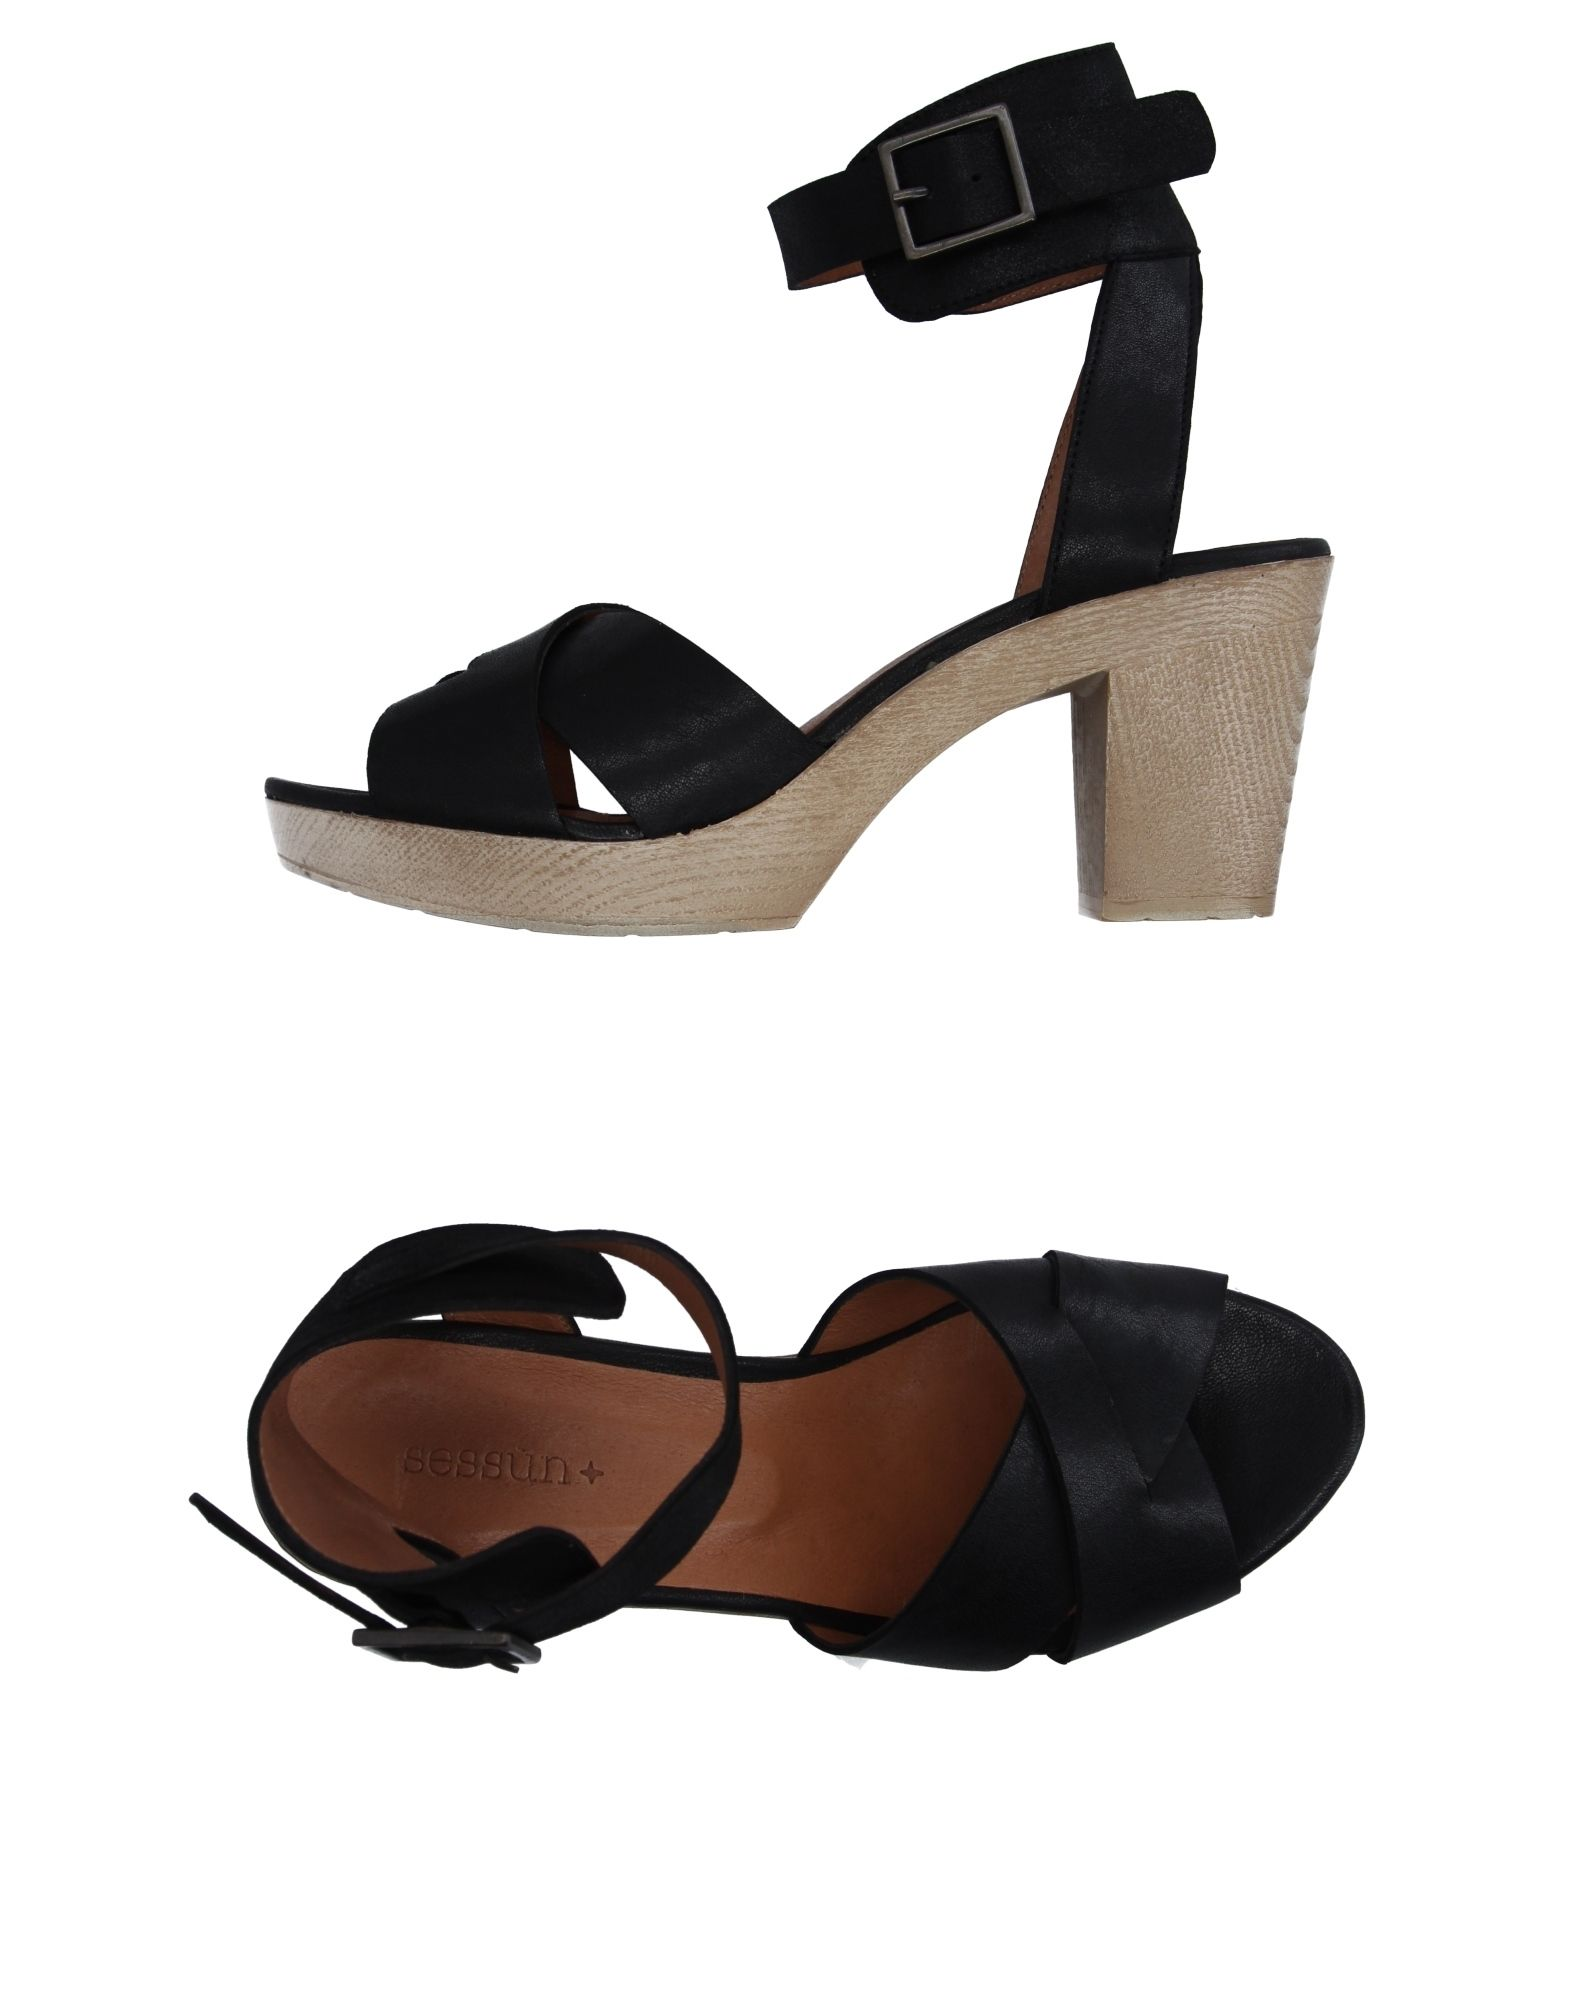 SESSUN Sandals in Black